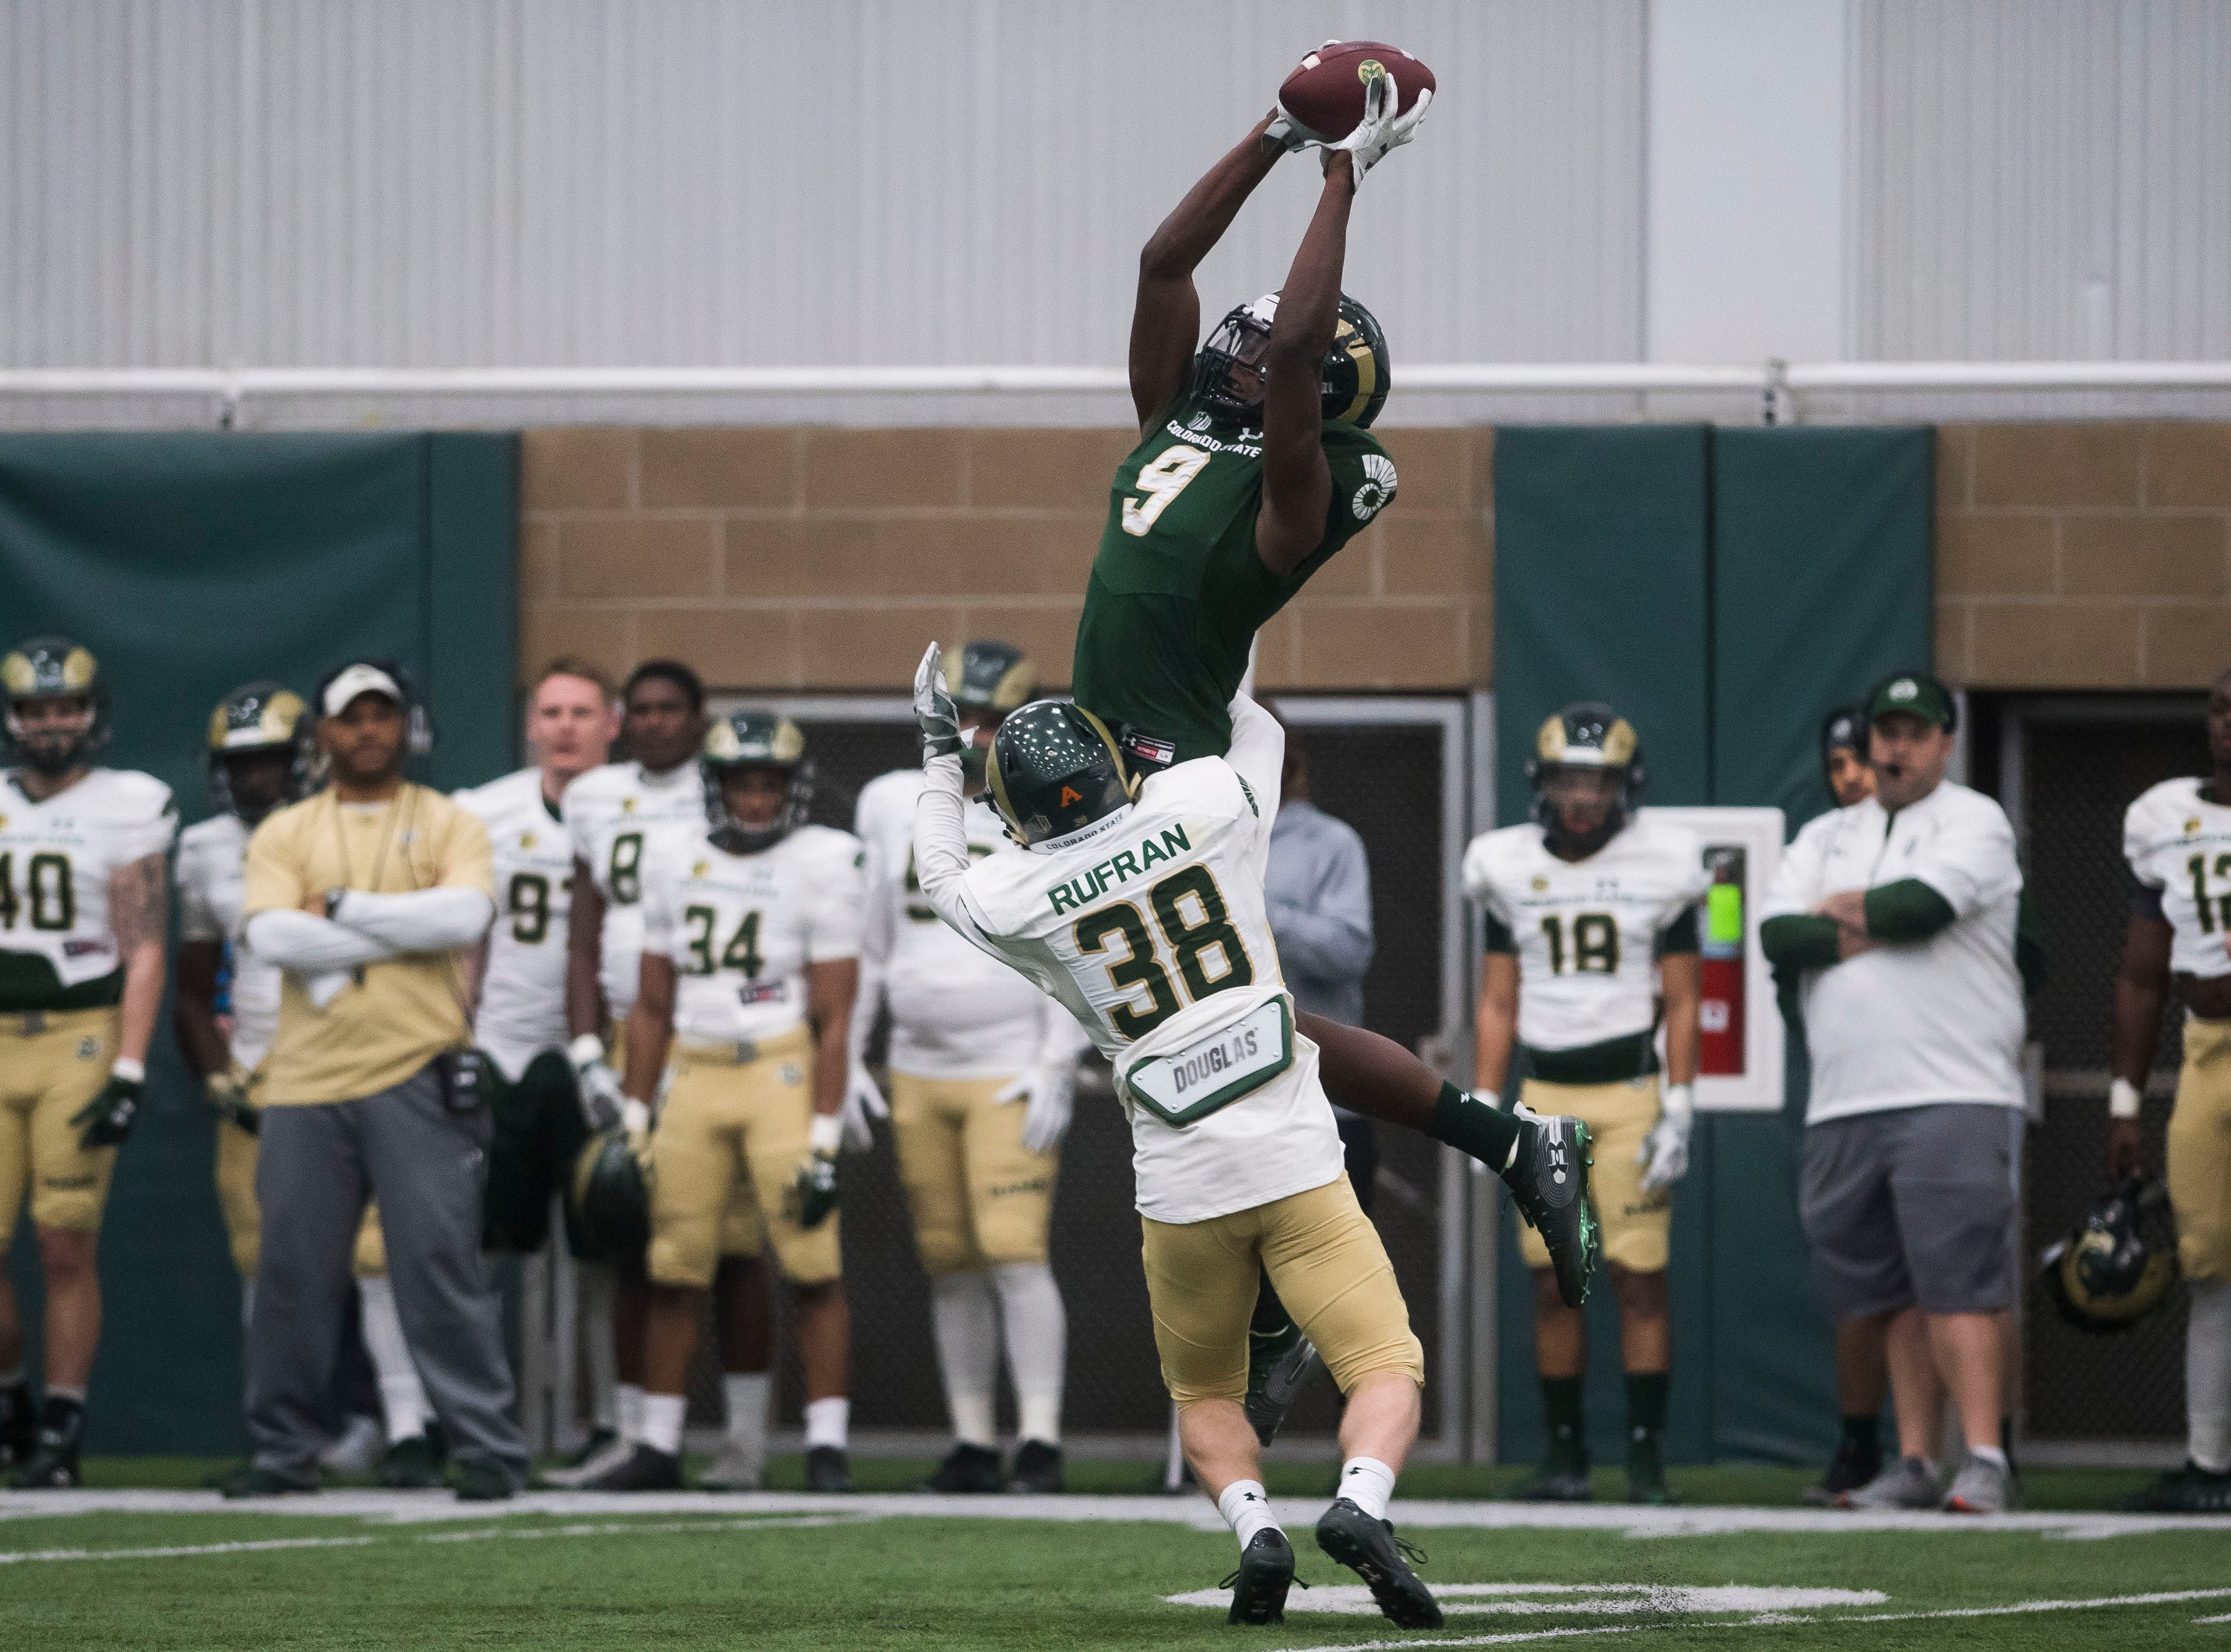 CSU junior wide receiver Warren Jackson (9) pulls in a reception while being defended by sophomore cornerback Adonis Rufran (38) during CSU's Spring game on Thursday, March 14, 2019, at their indoor practice facility in Fort Collins, Colo.